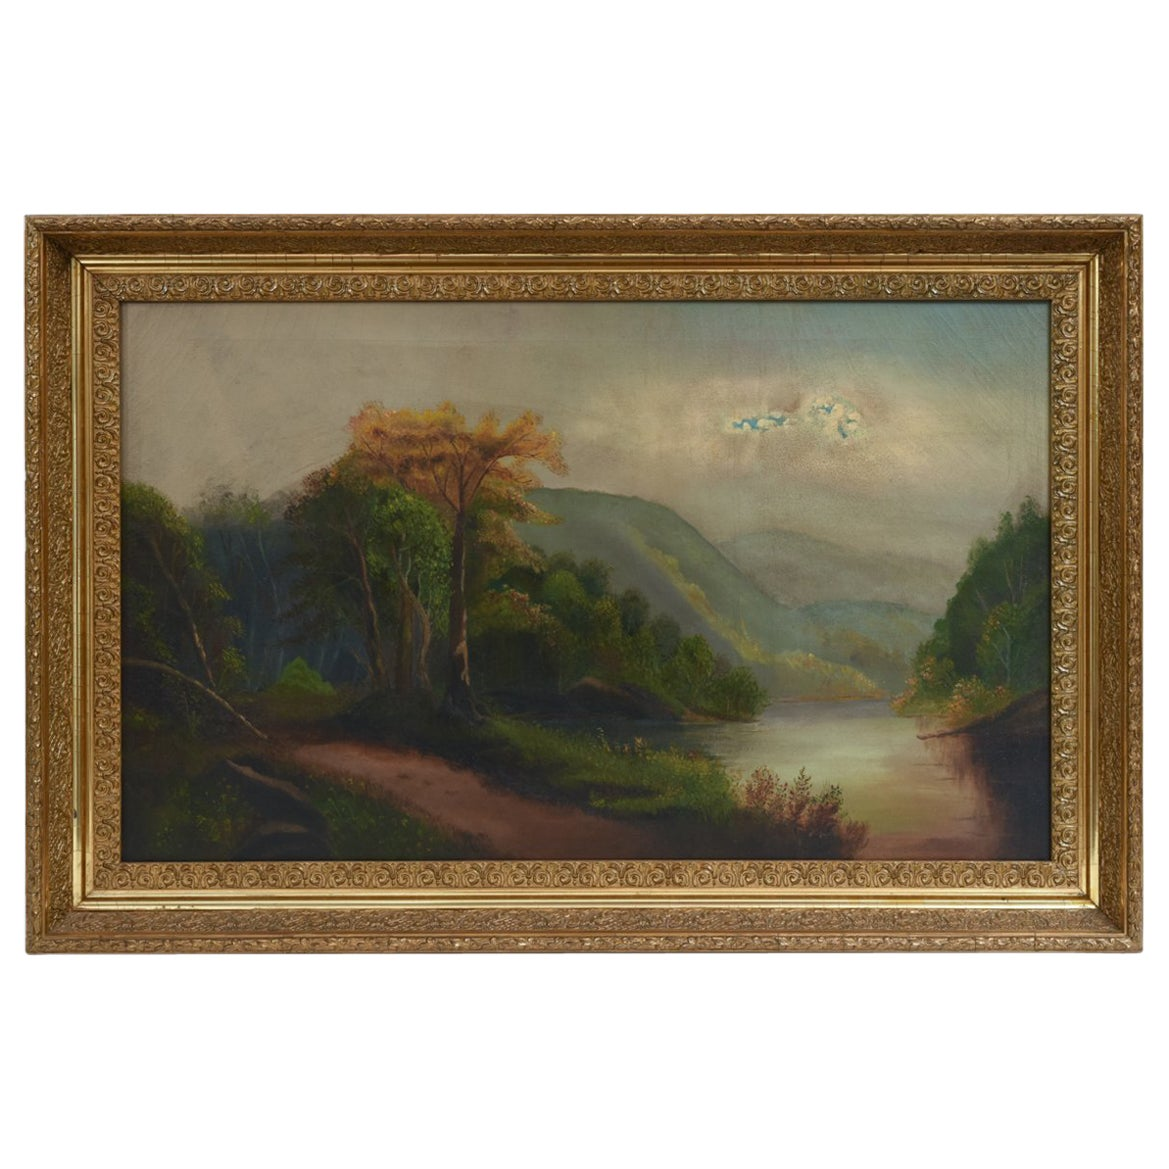 Oil on Canvas Hudson Valley River School Painting